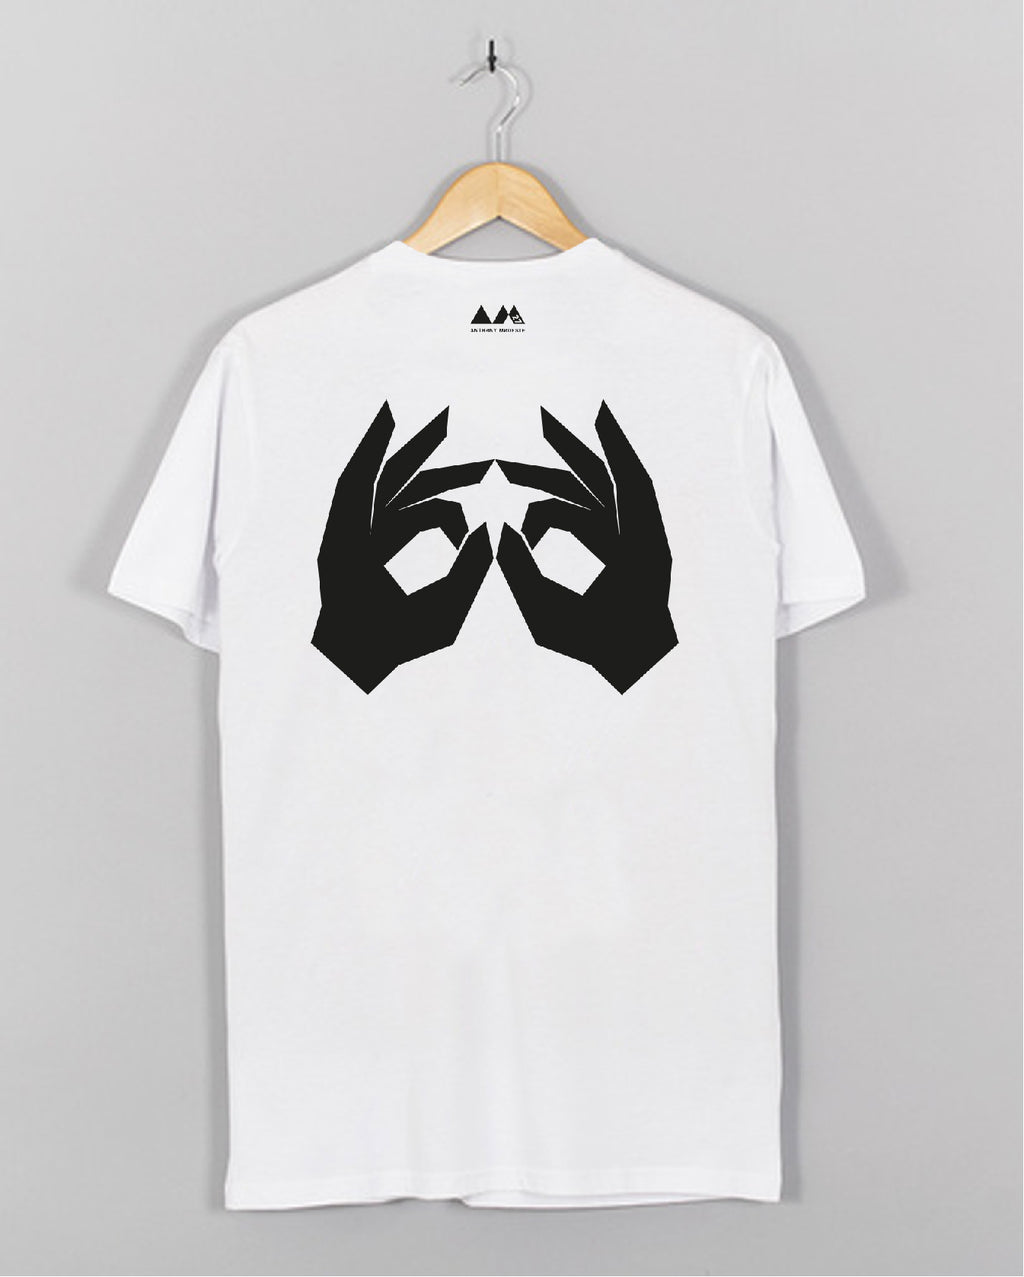 AM27 LOGO TEE - WHITE